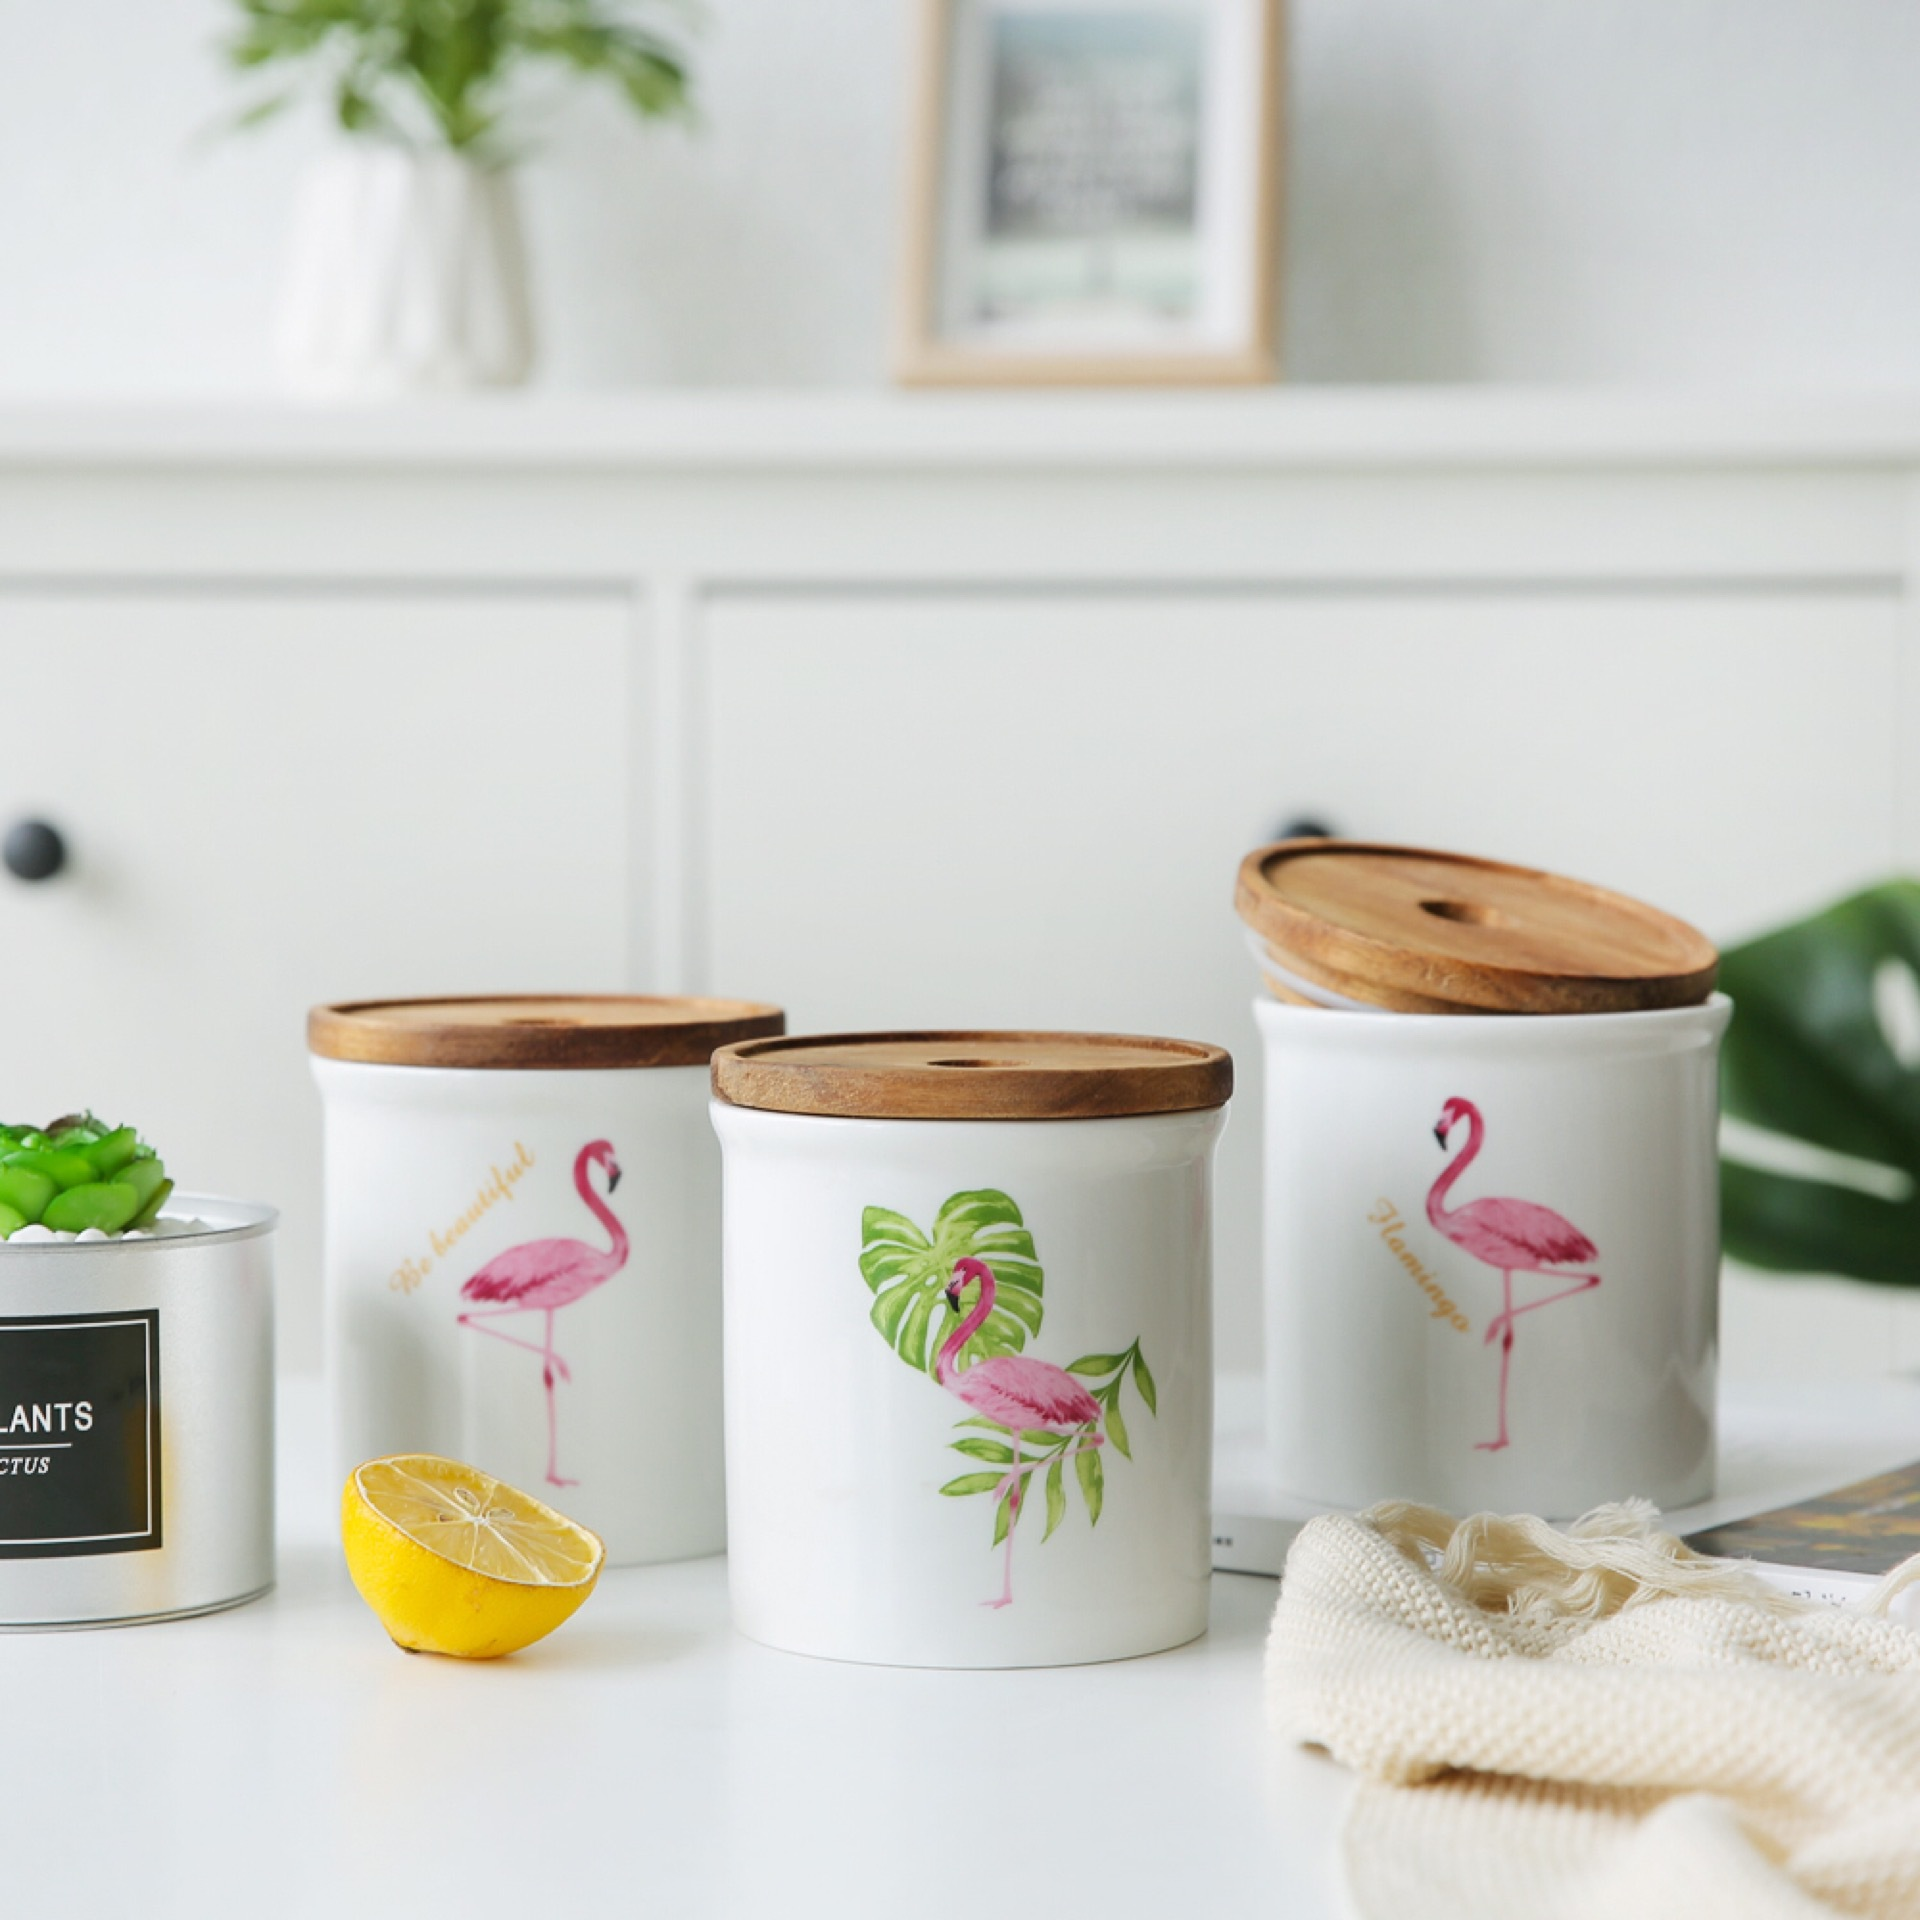 Flamingo Mug Drinkware Ceramic Mugs With Wood Lid Gift